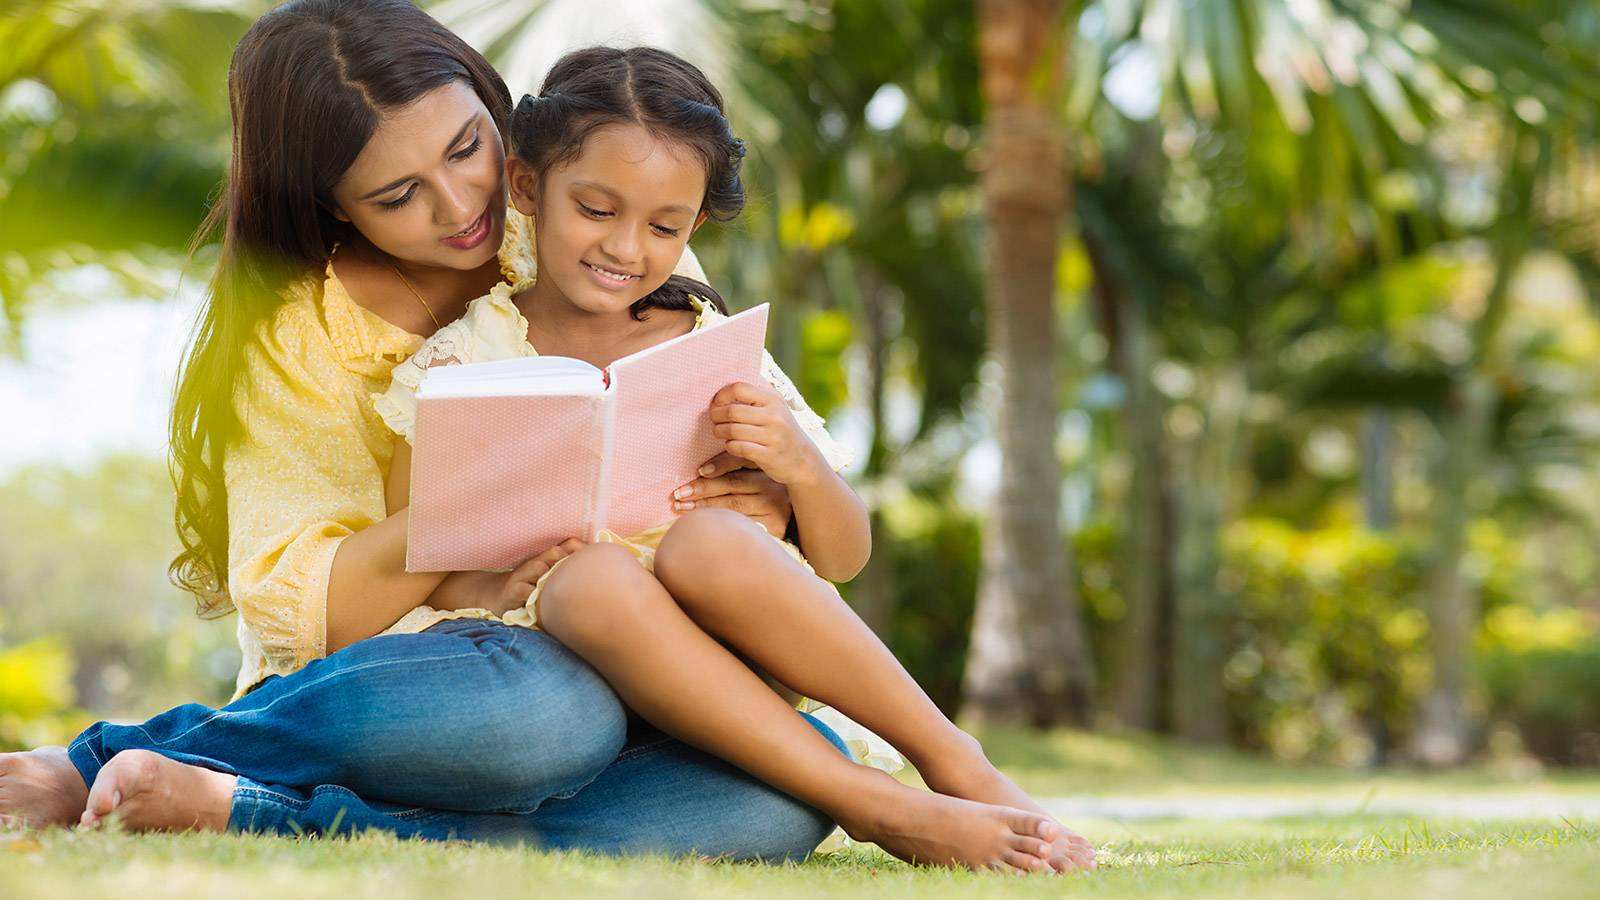 Kids--Wean-junior-off-digital-gadgets-―-to-books